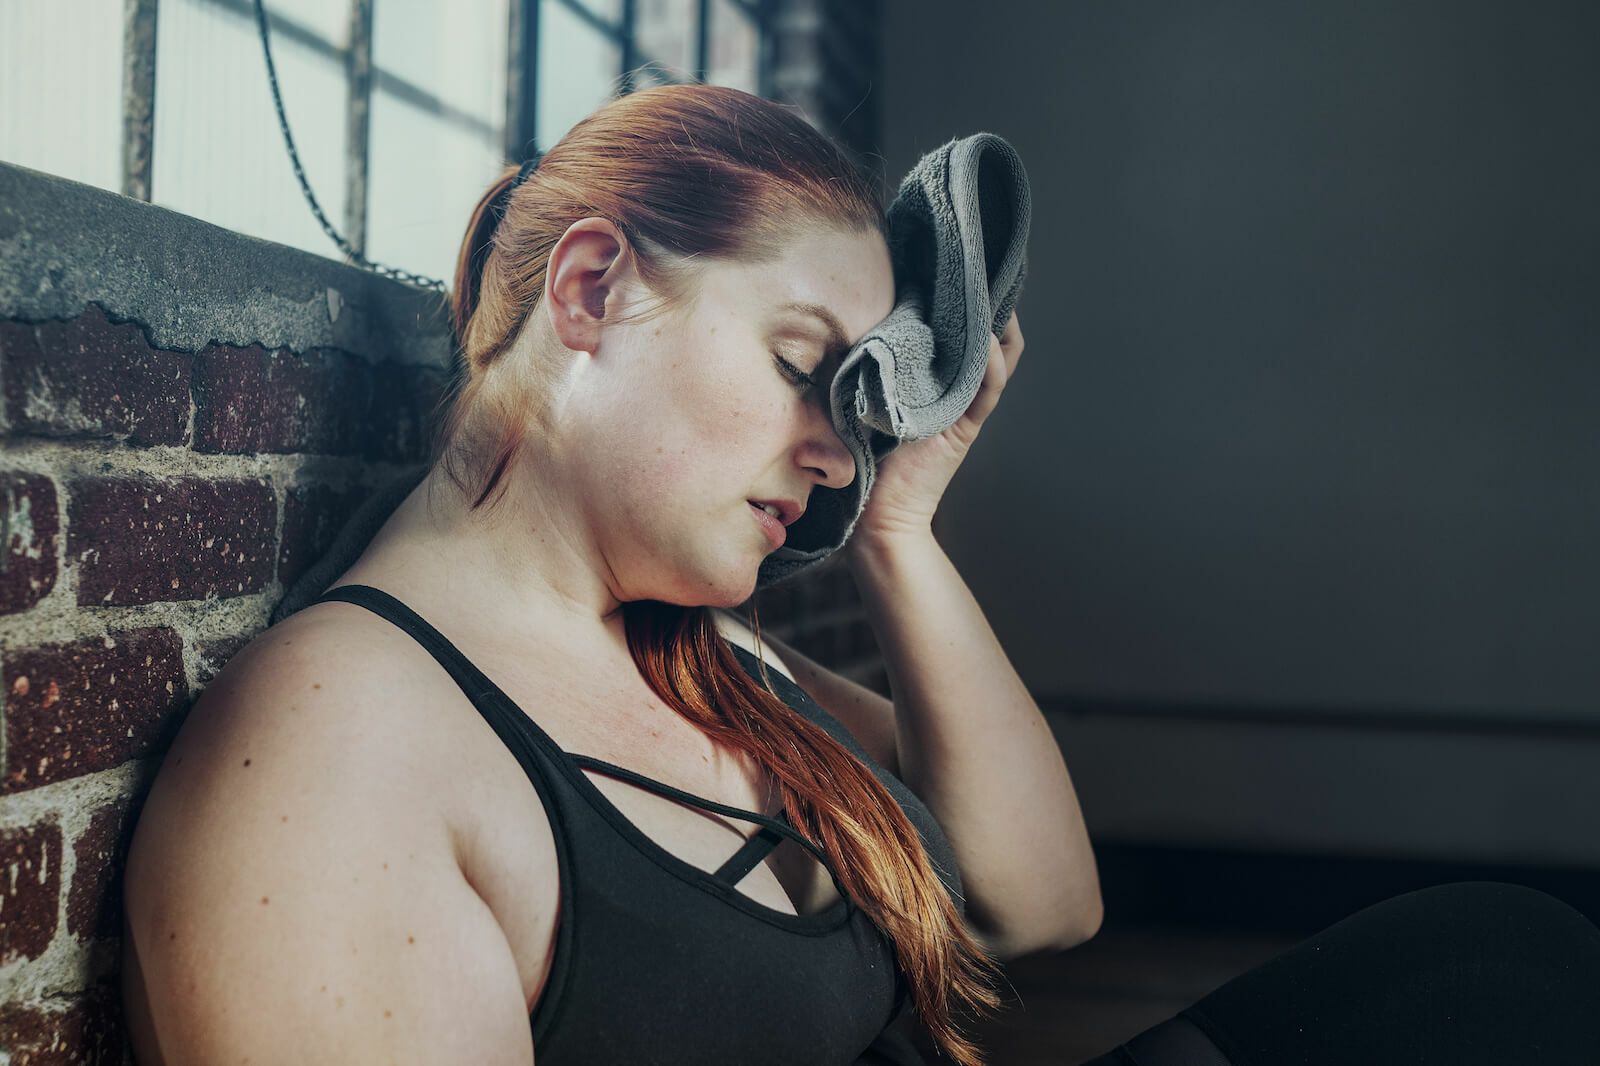 Chills and sweats: woman wiping away her sweat